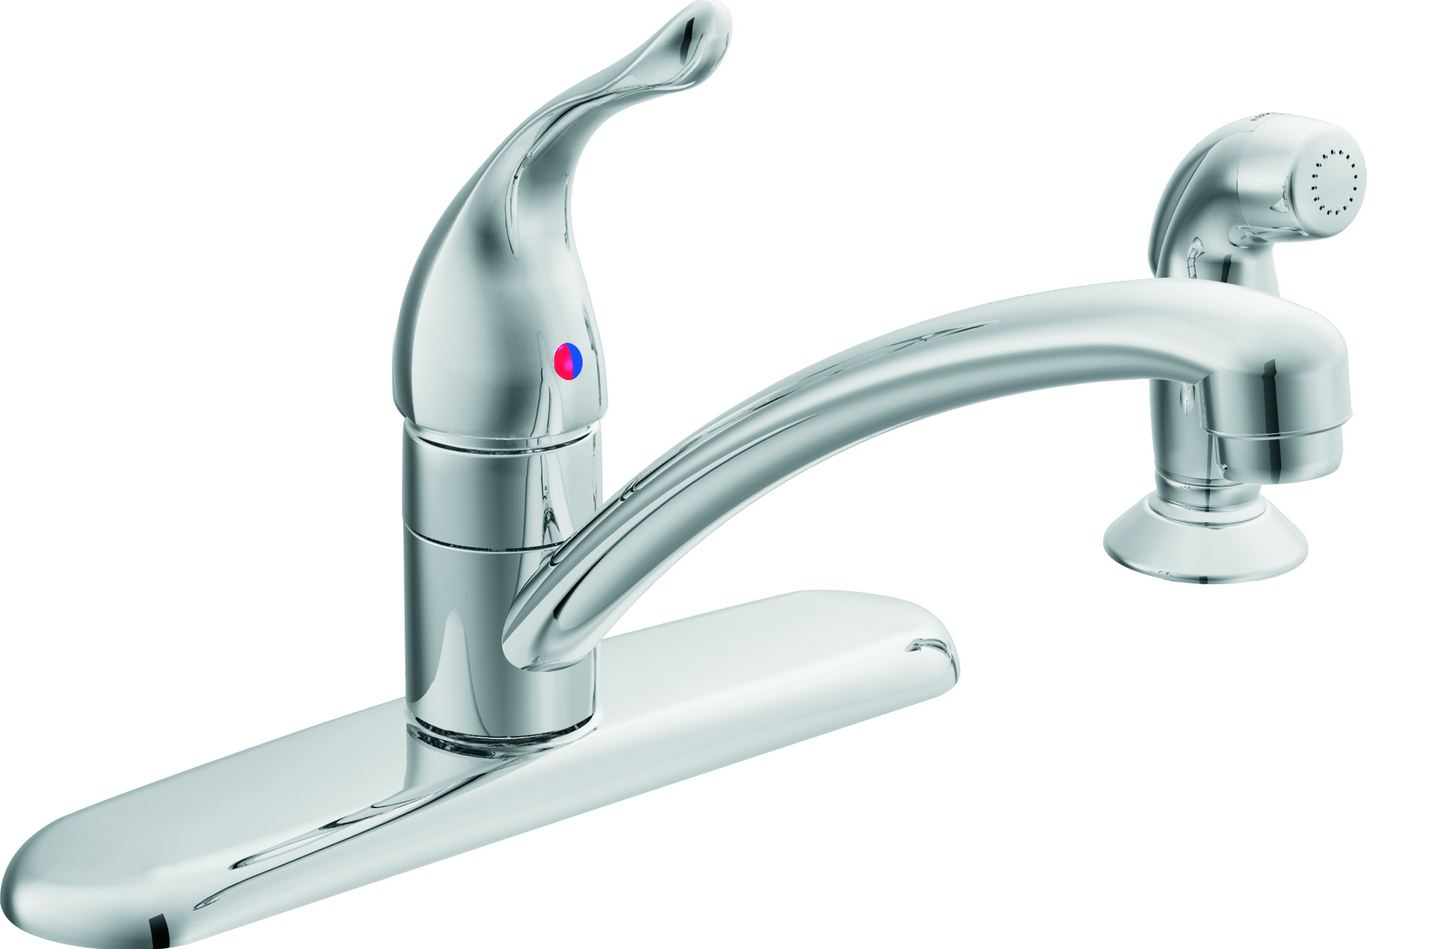 index jsp path find&ID 2CPlumbing 2CFaucets 2CKitchens 2CSingle single handle kitchen faucet MOEN CHATEAU KITCHEN SINK FAUCET w SPRAY 4 HOLE SINK CHROME